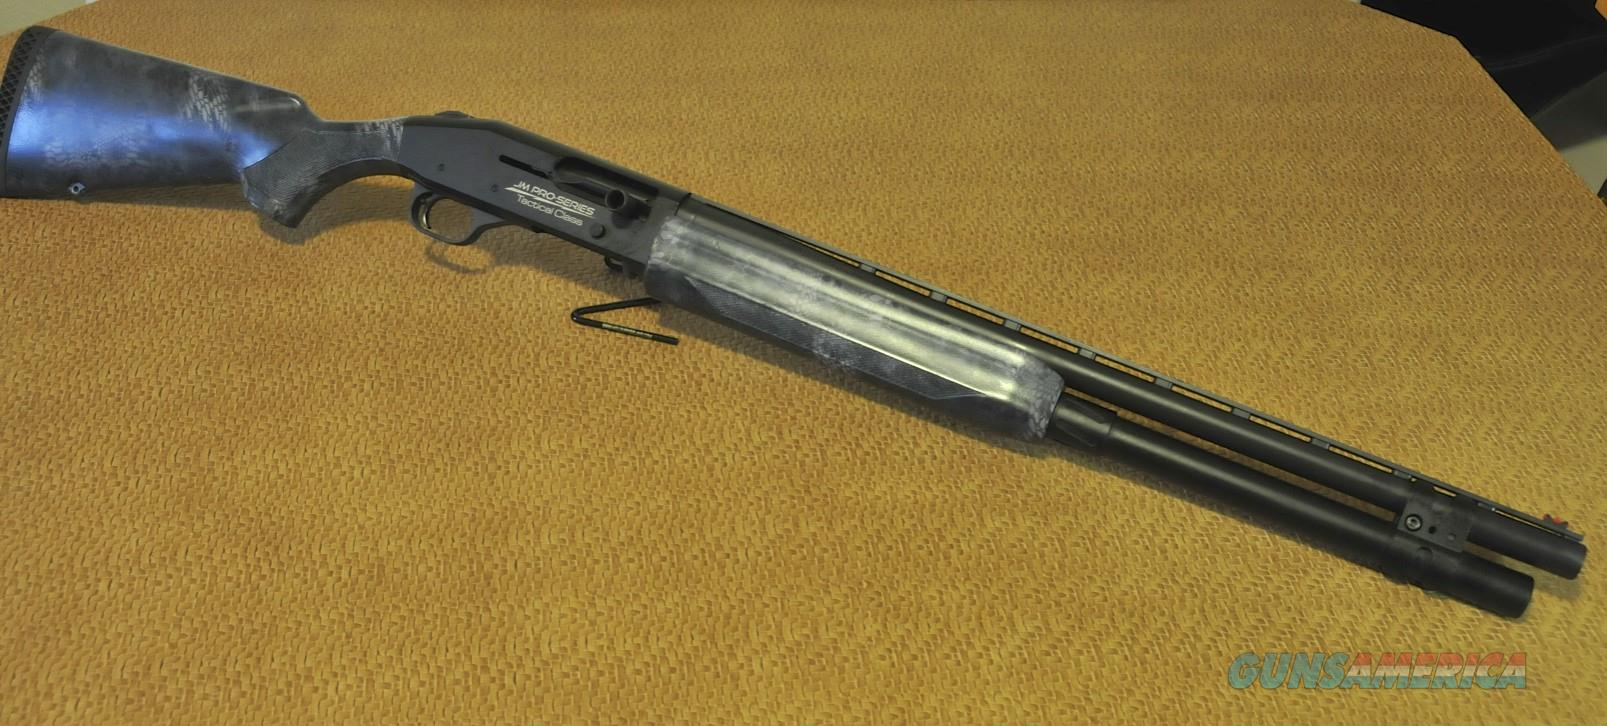 MOSSBERG 930 JM Pro-Series Tactical Jerry Miculek - KRYPTEK  Guns > Shotguns > Mossberg Shotguns > Autoloaders